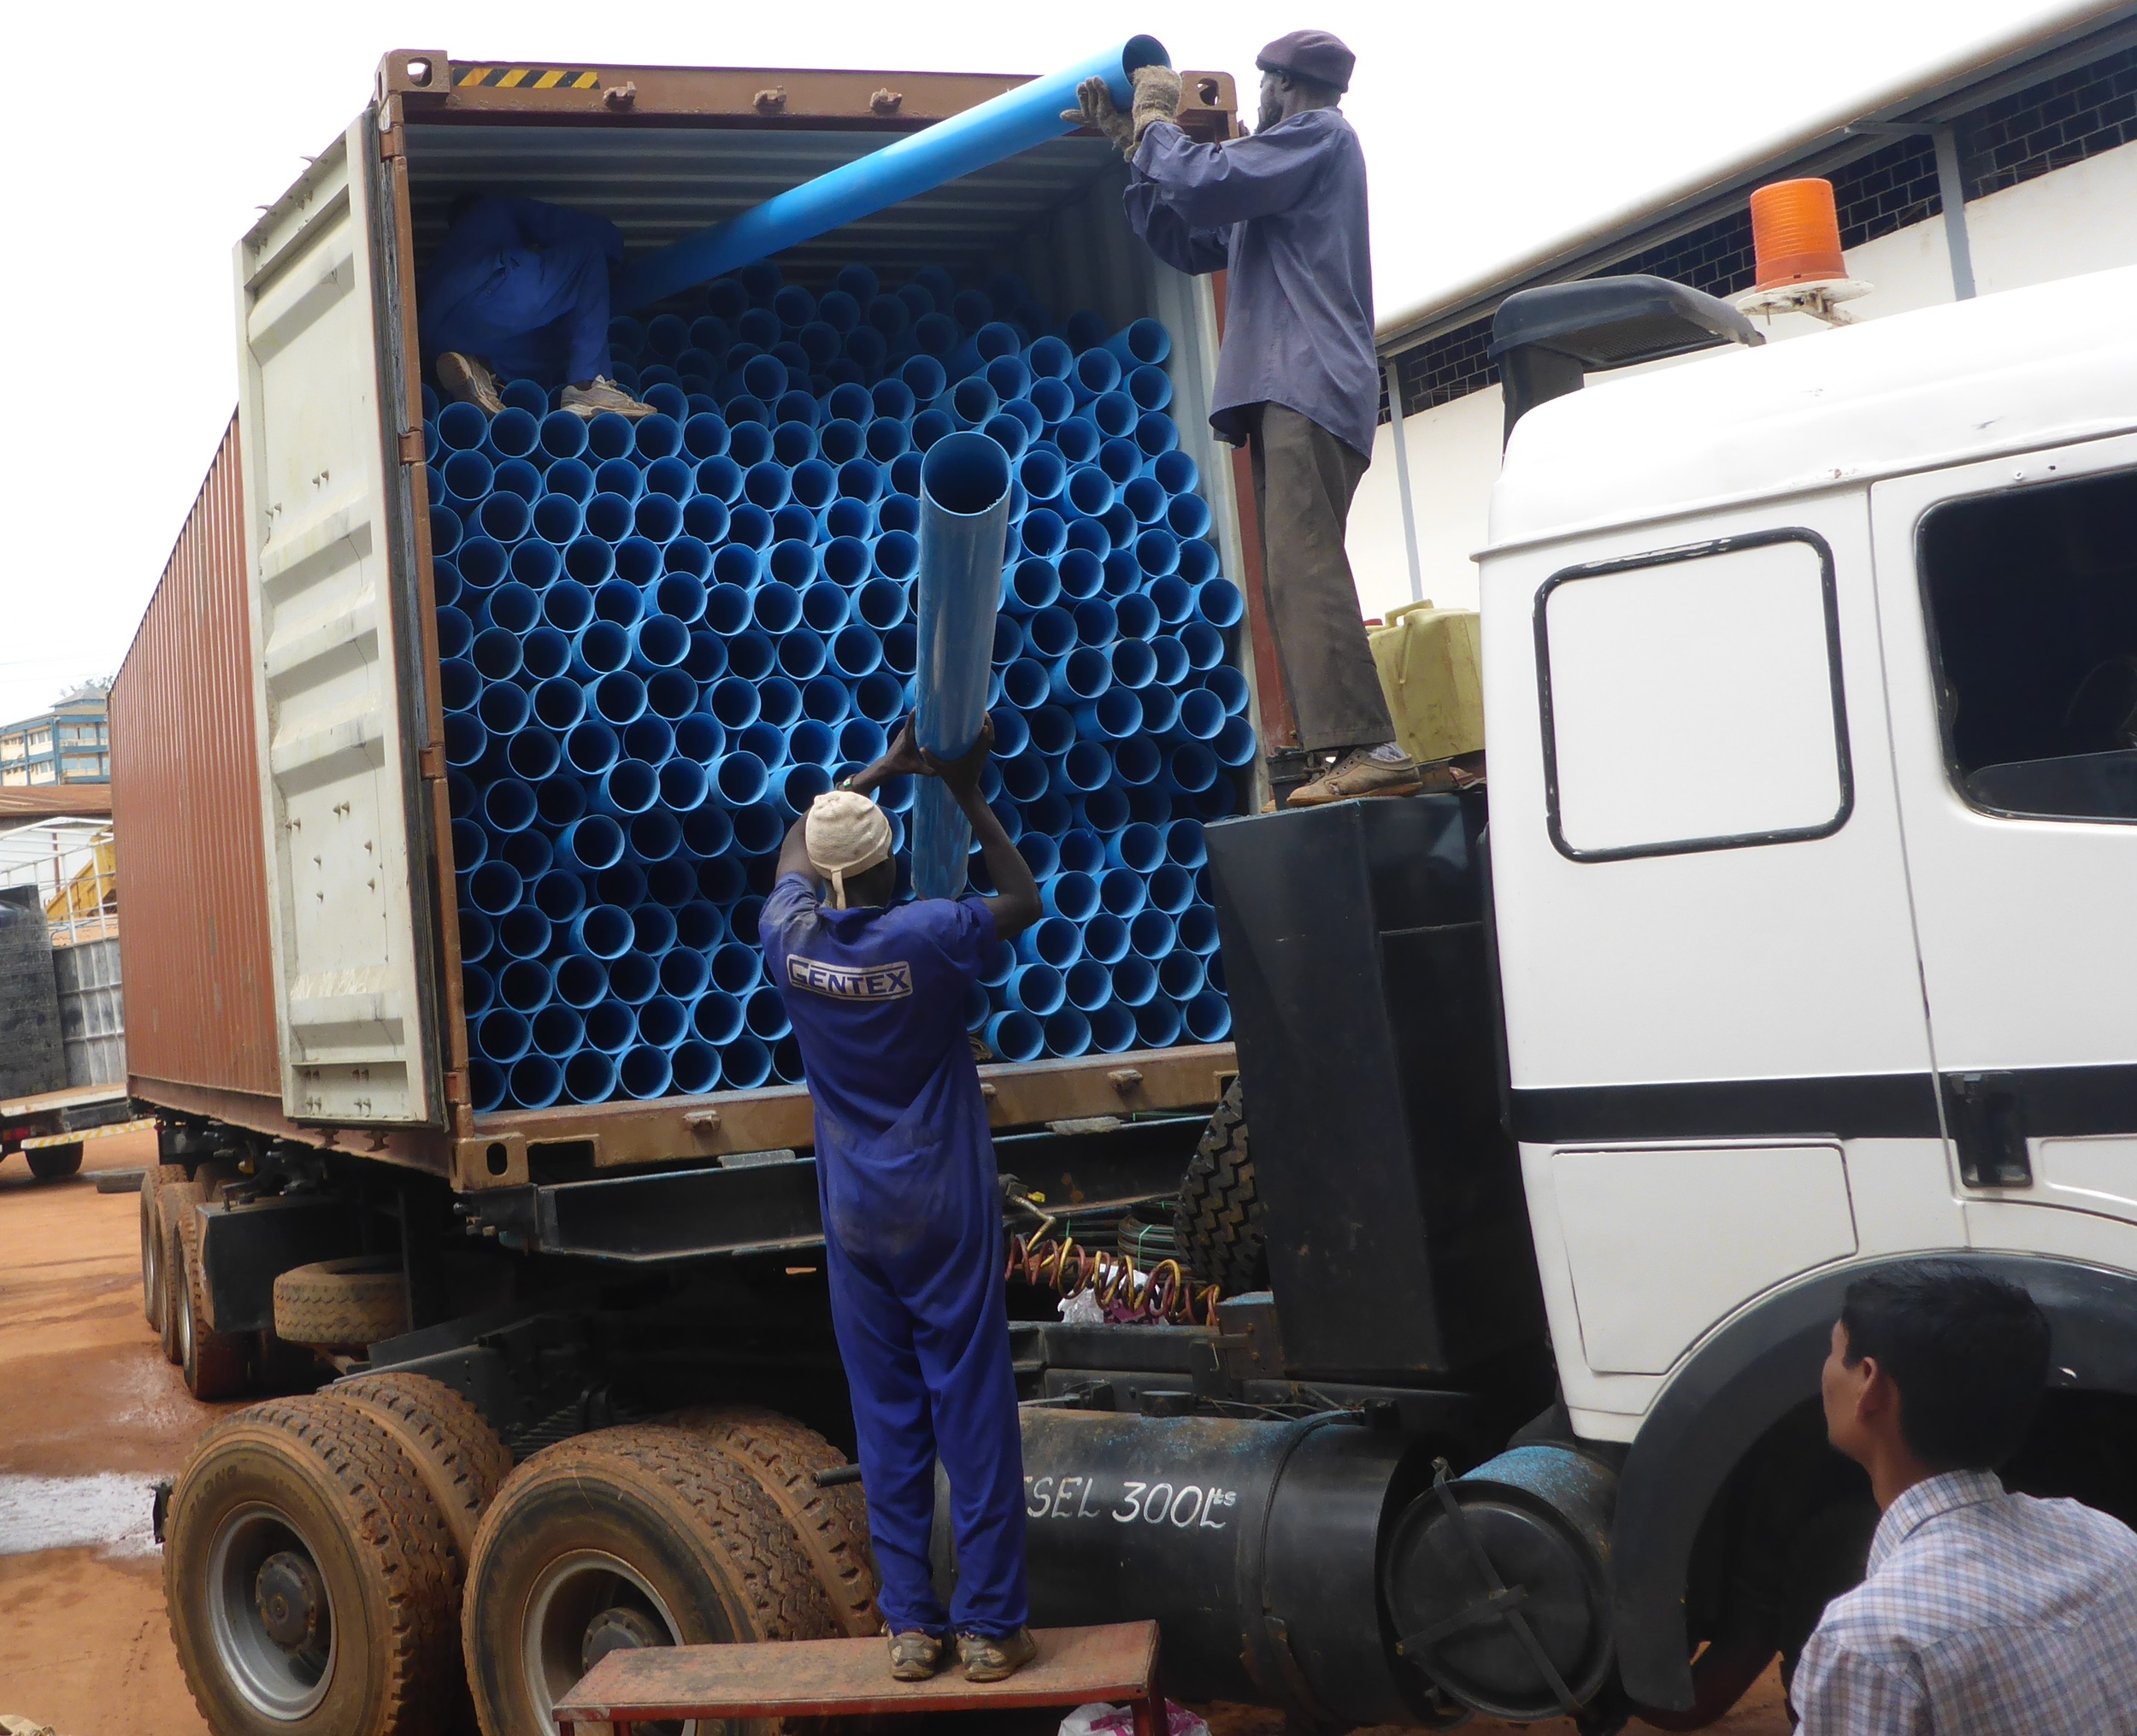 Loading supply truck in Kampala, Uganda. Team will then drive equipment to South Sudan.